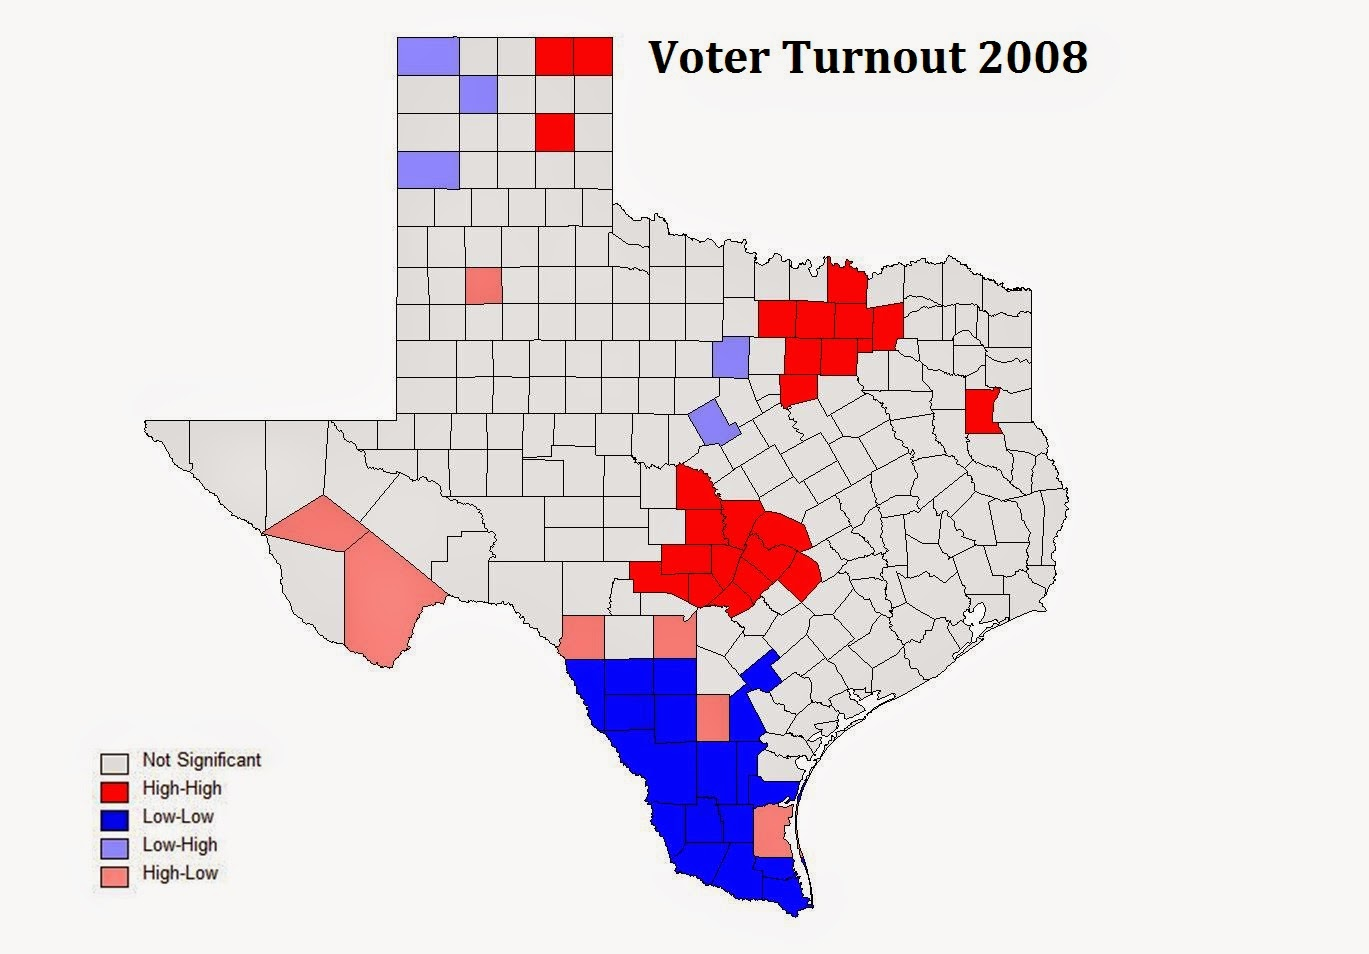 in 2008 southern texas maintained significant area of low voter turnout just as it did in 1980